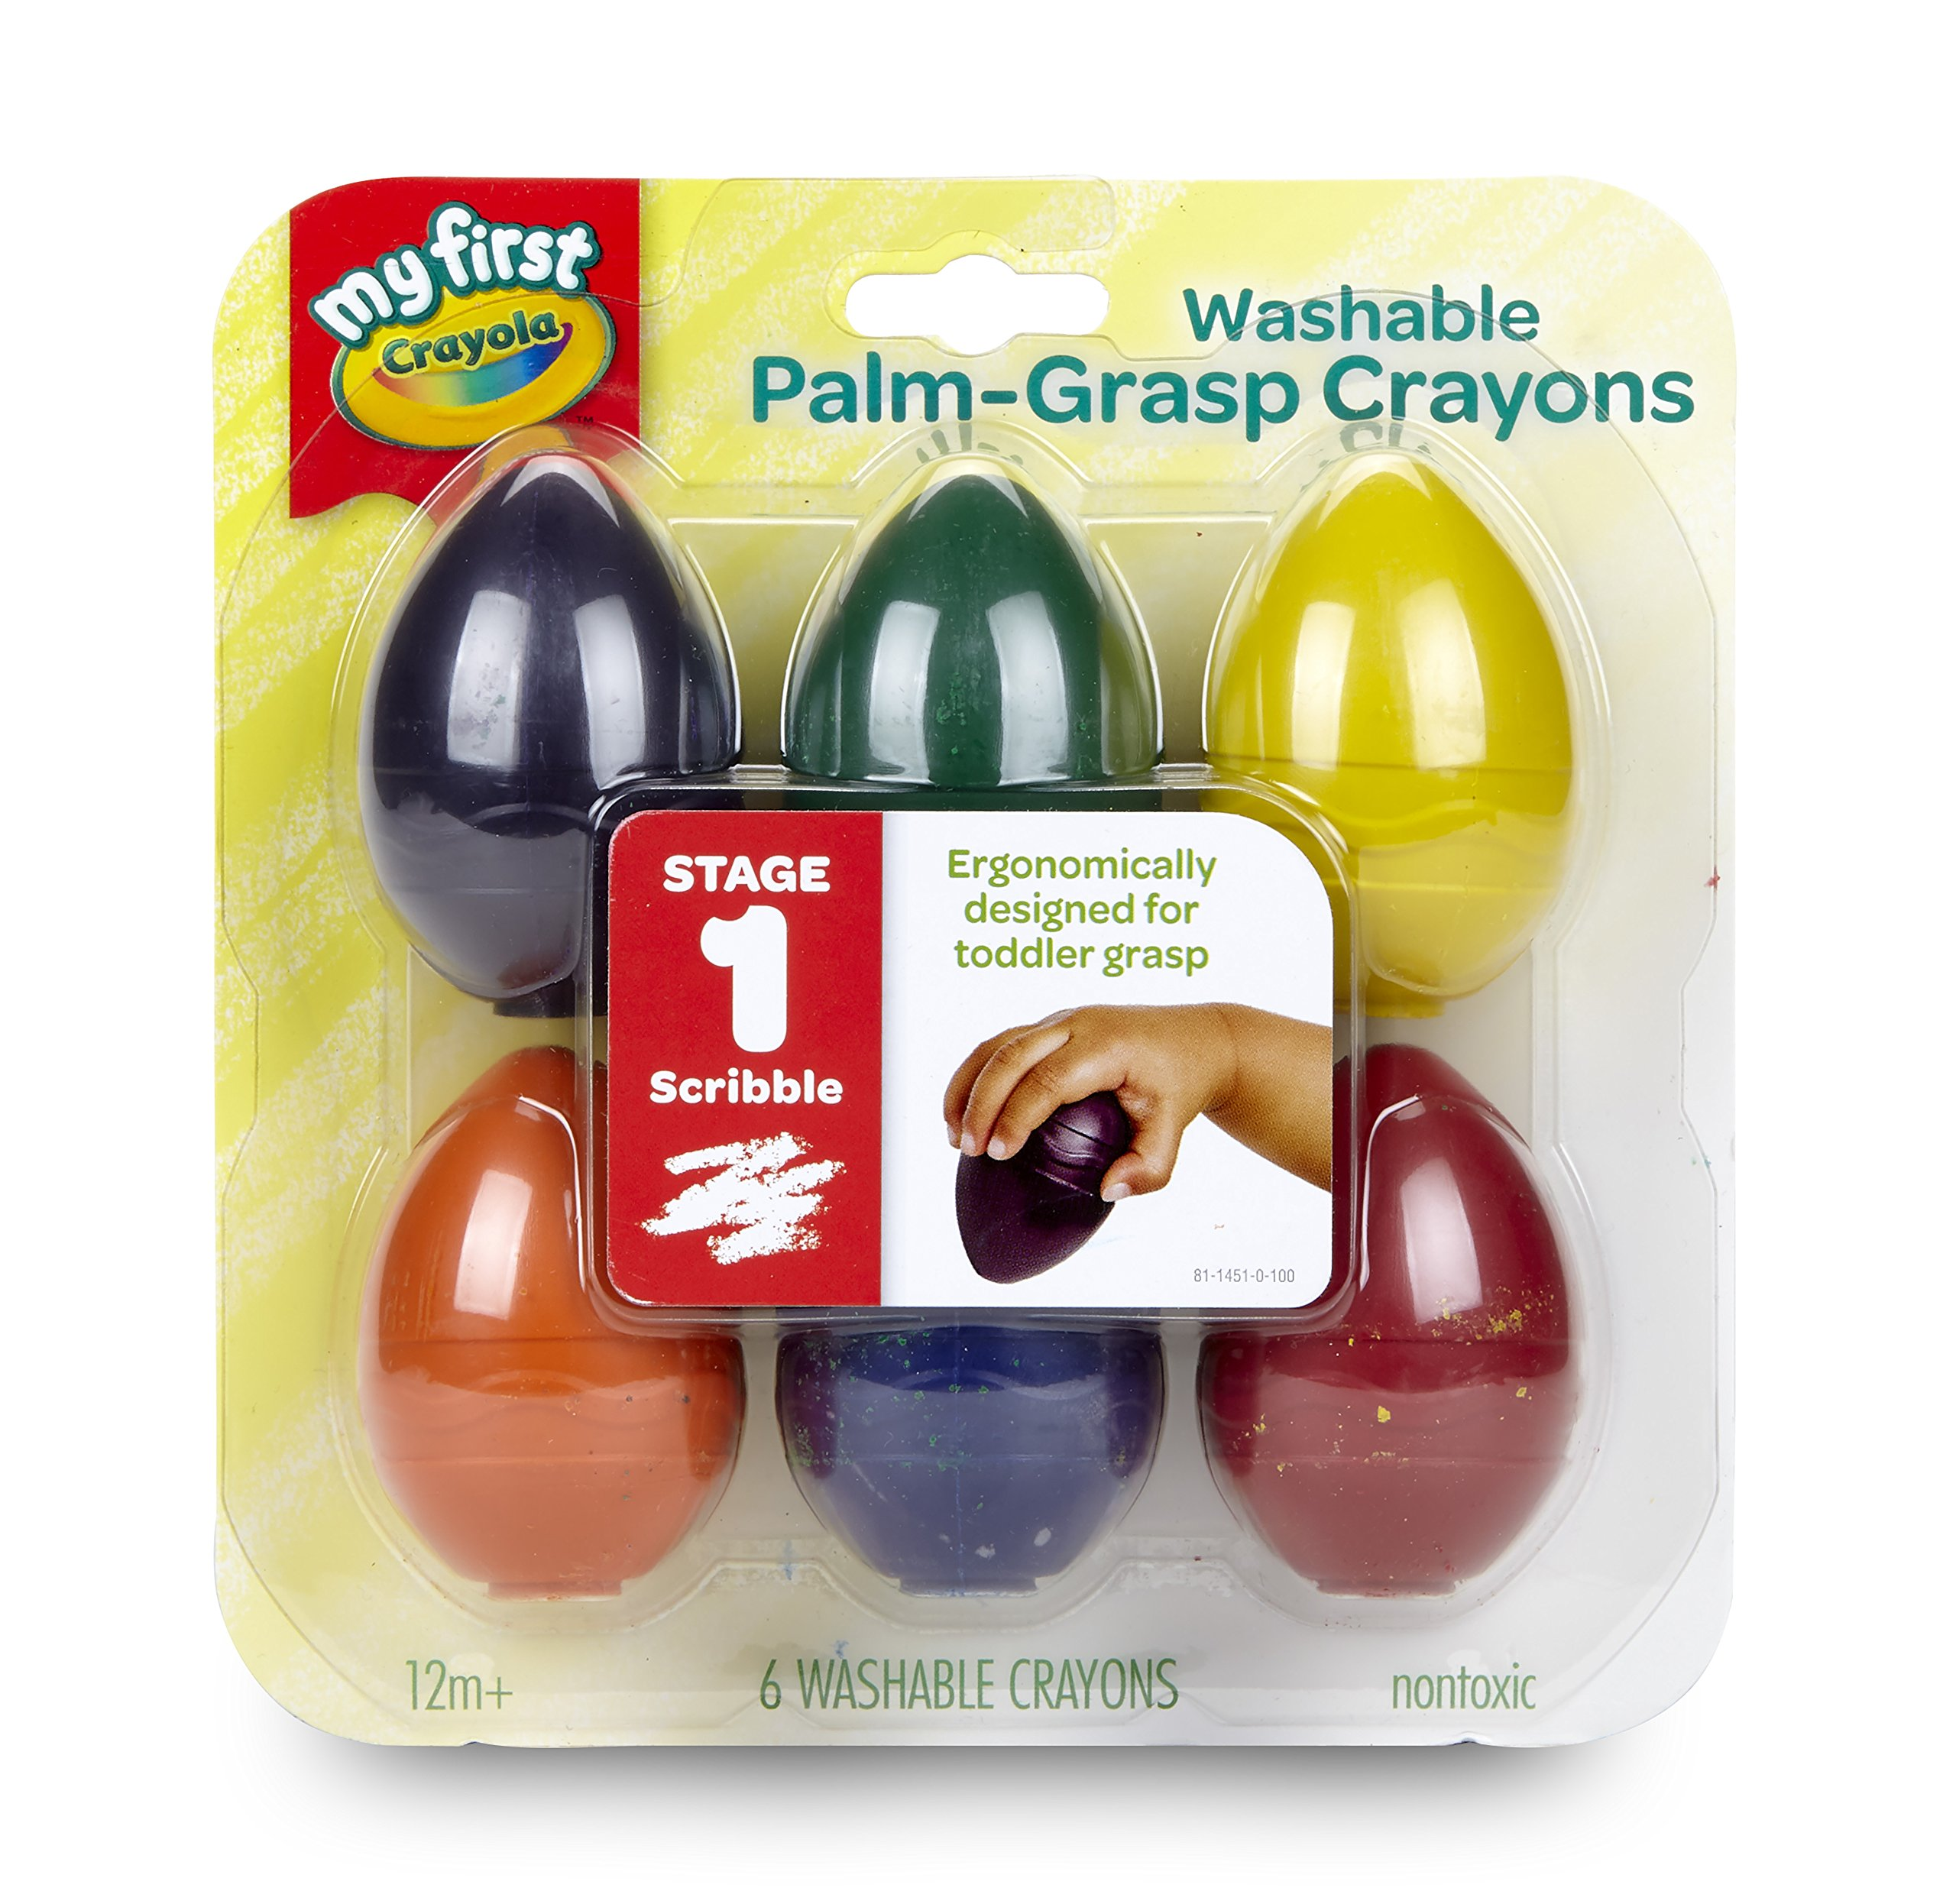 Crayola My First Palm Grip Crayons, Coloring for Toddlers, 6ct by Crayola (Image #2)